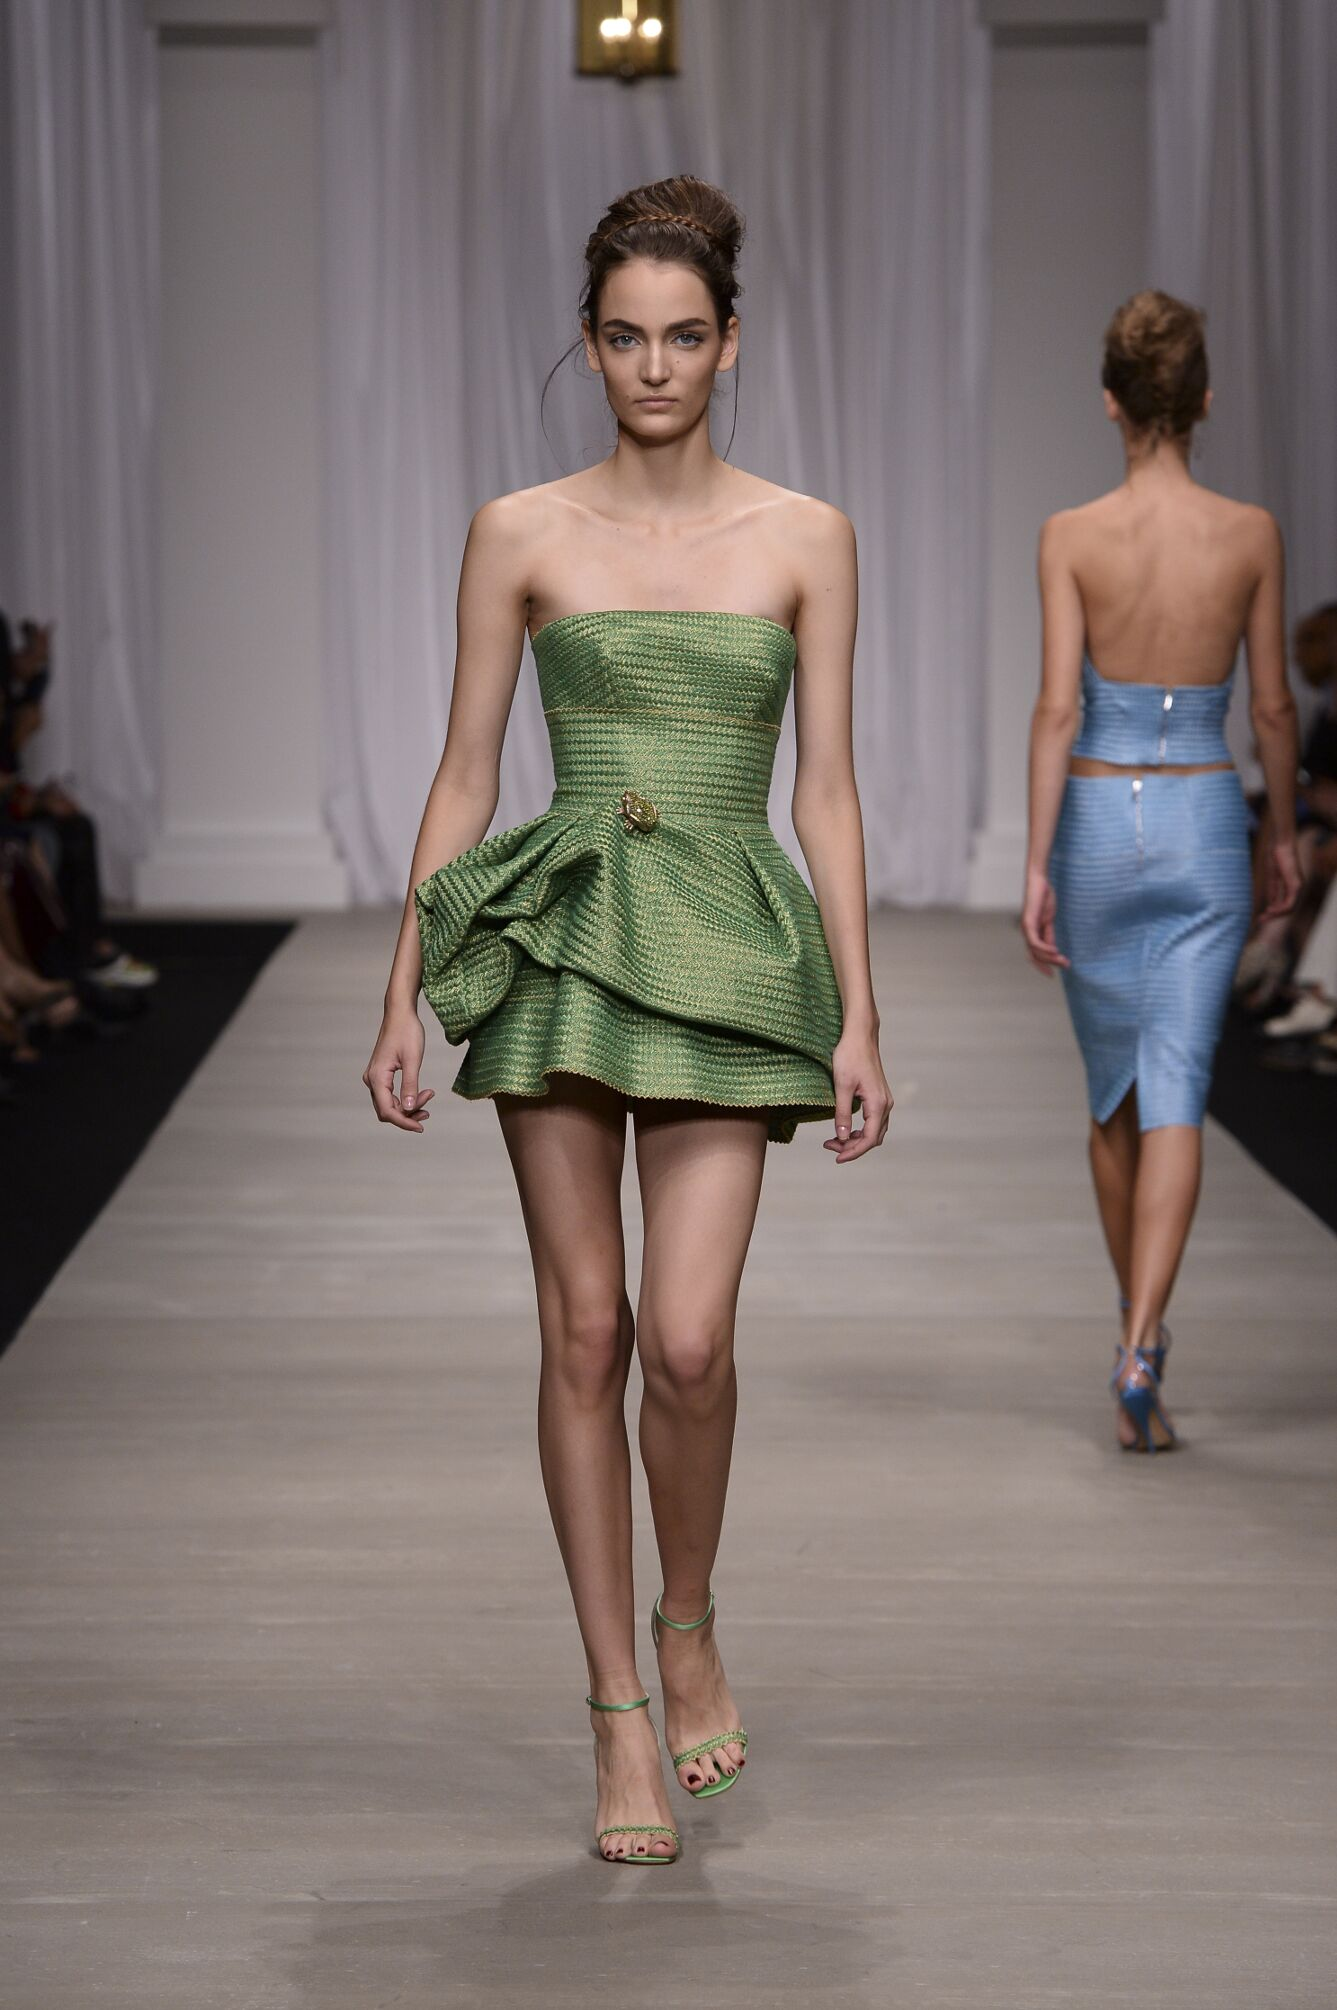 The Fashion Runway models - Couture Pictures